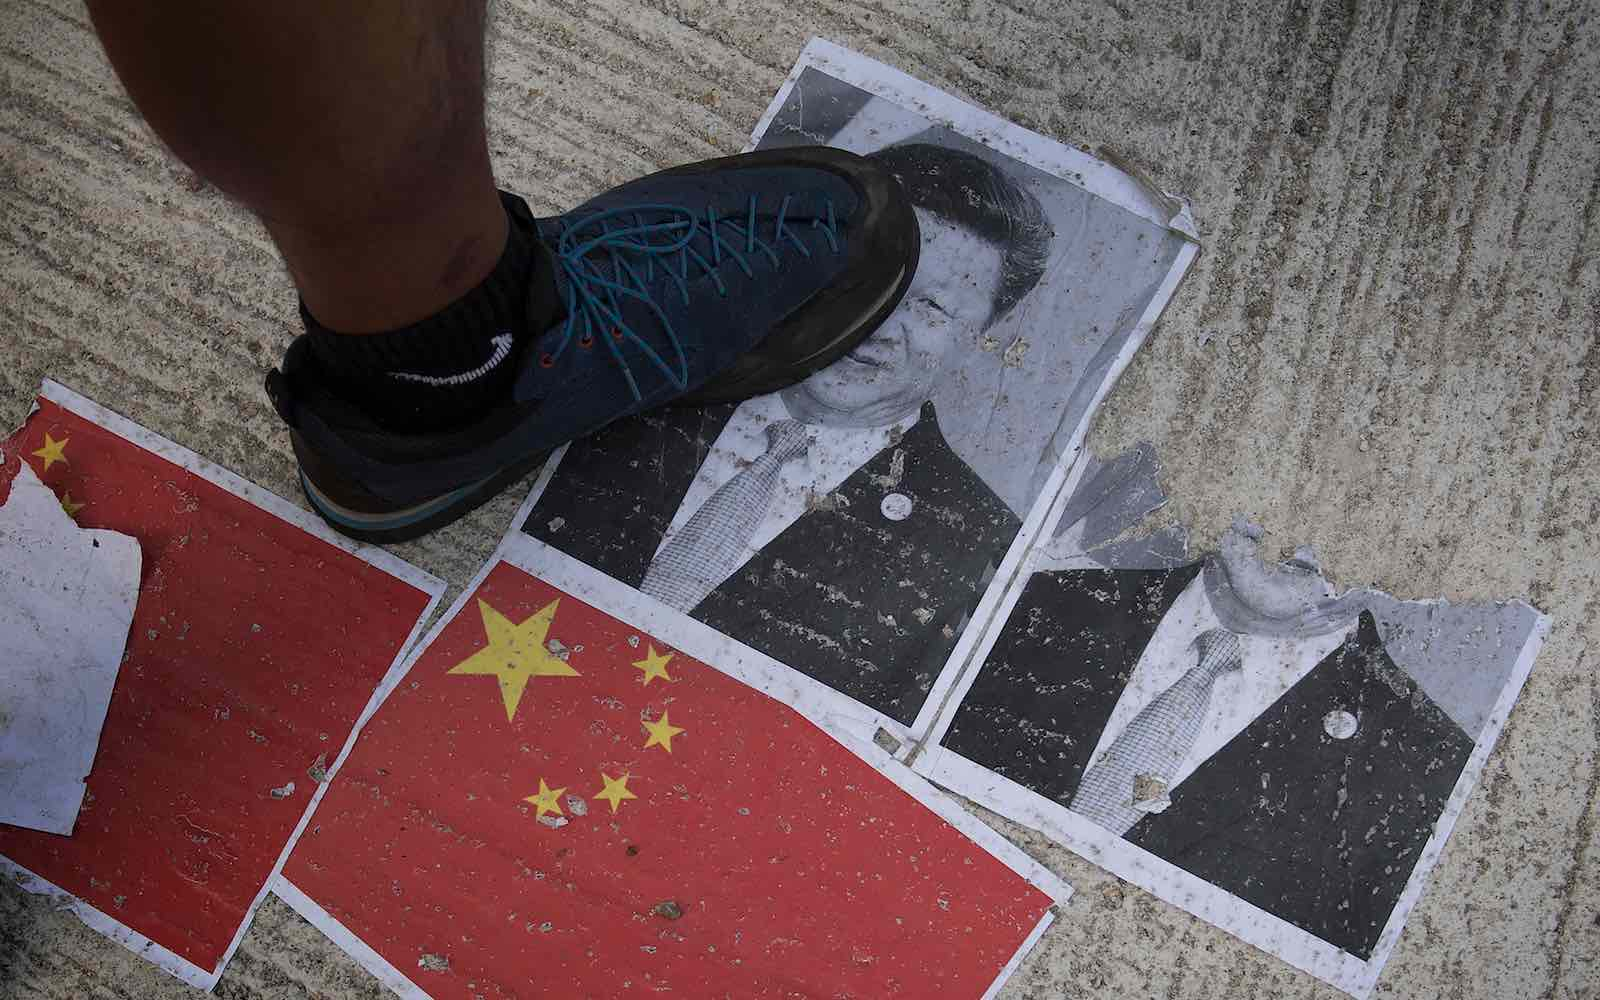 A protester treads on an image of Chinese President Xi Jinping in Hong Kong on 1 October 2019, the National Day marking the 70th anniversary of communist China's founding. (Photo: Mark Ralston/AFP via Getty)